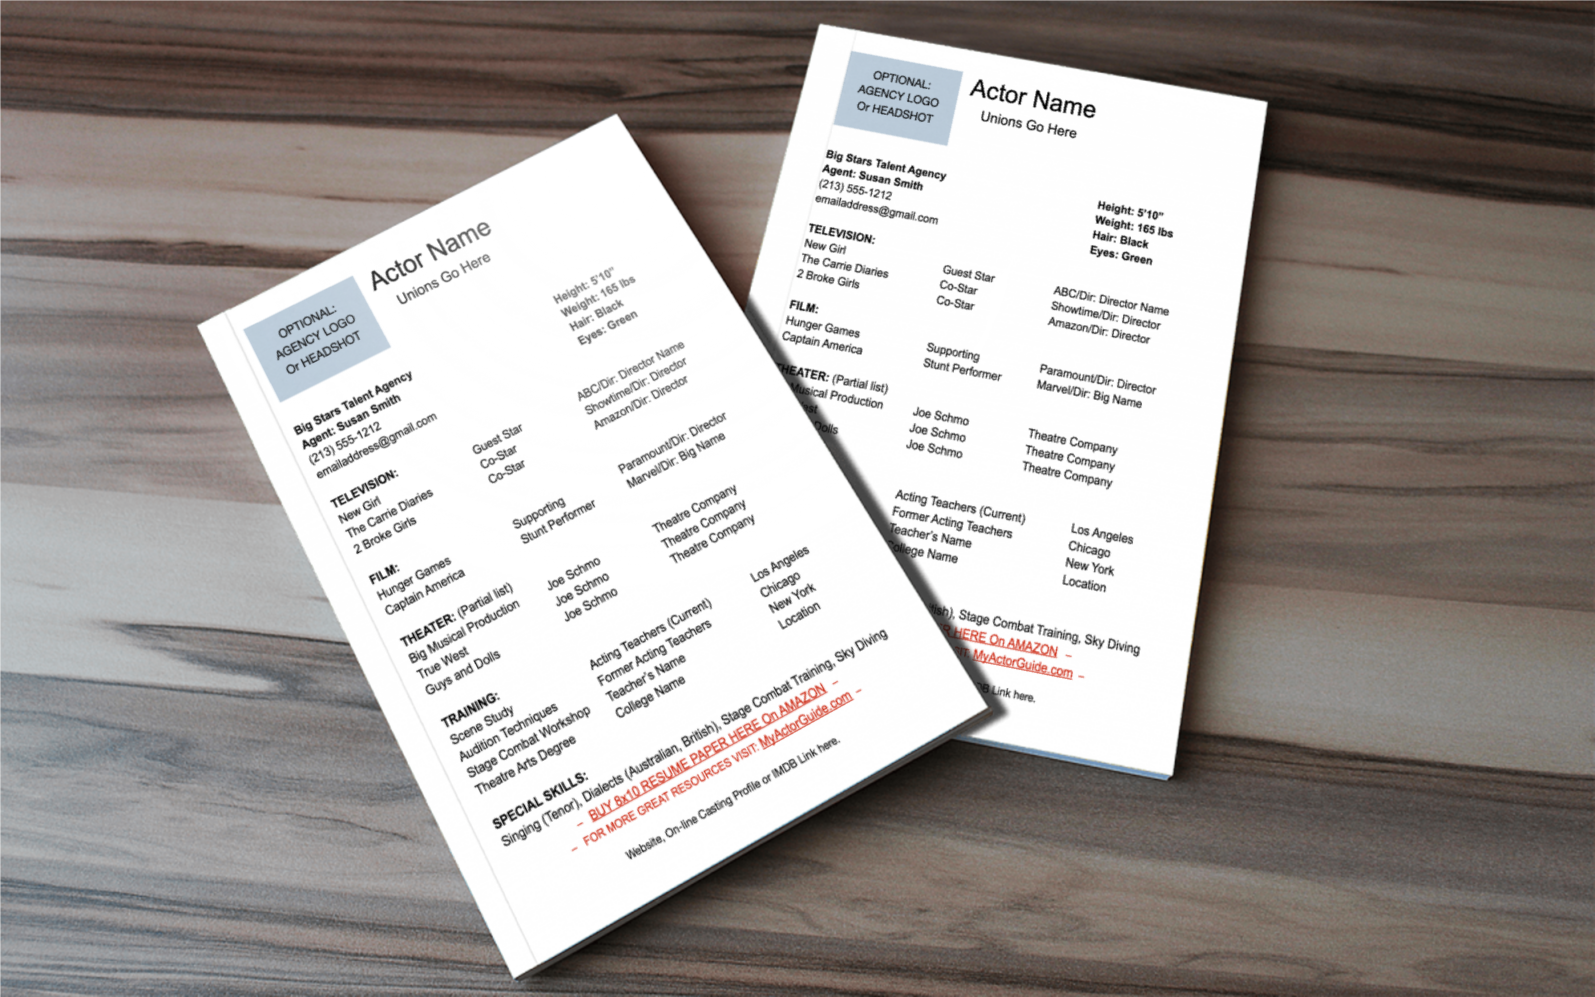 What should you put on your resume as a new actor? Find out how to format an actor's resume.